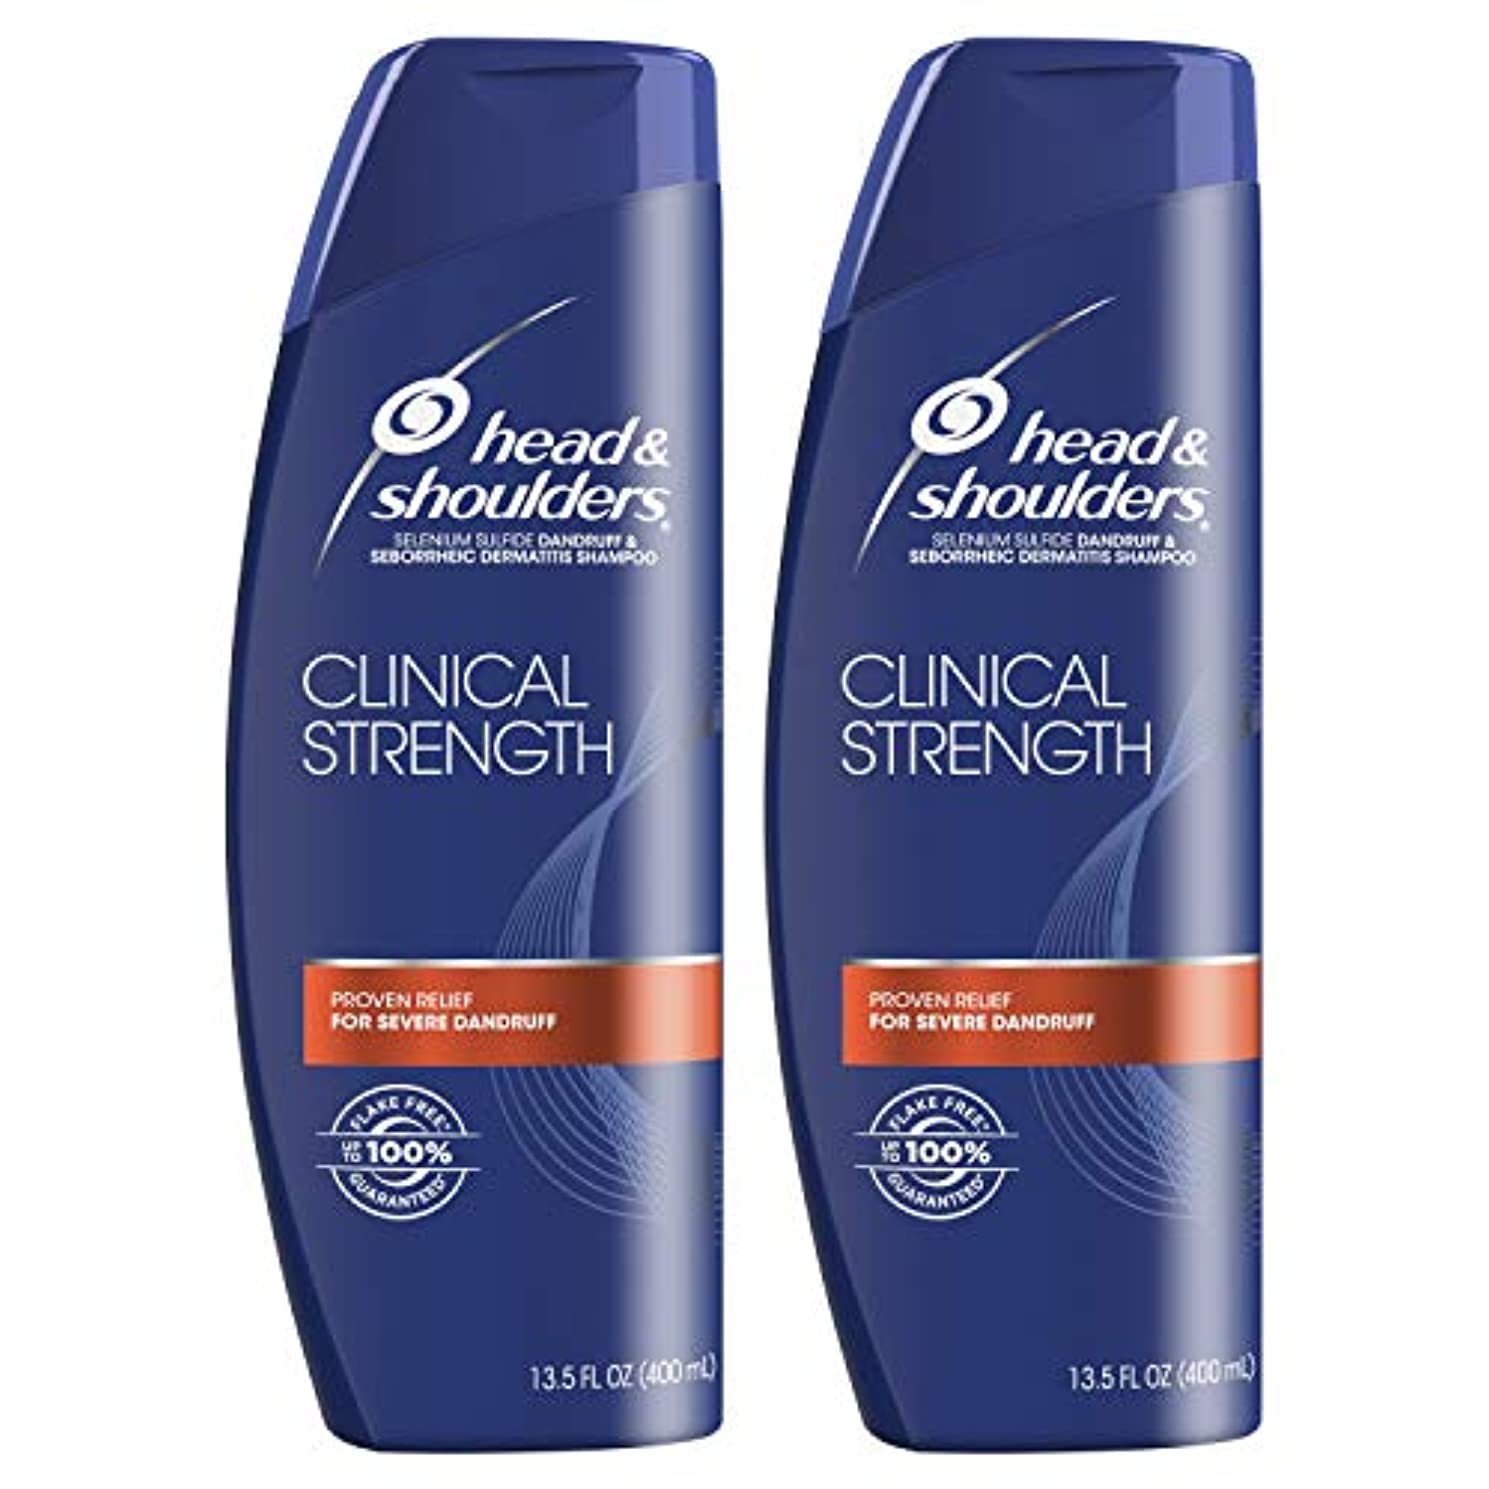 グリーンランド商品警報Head and Shoulders Clinical Strength Dandruff and Seborrheic Dermatitisシャンプー、13.5 FL OZ